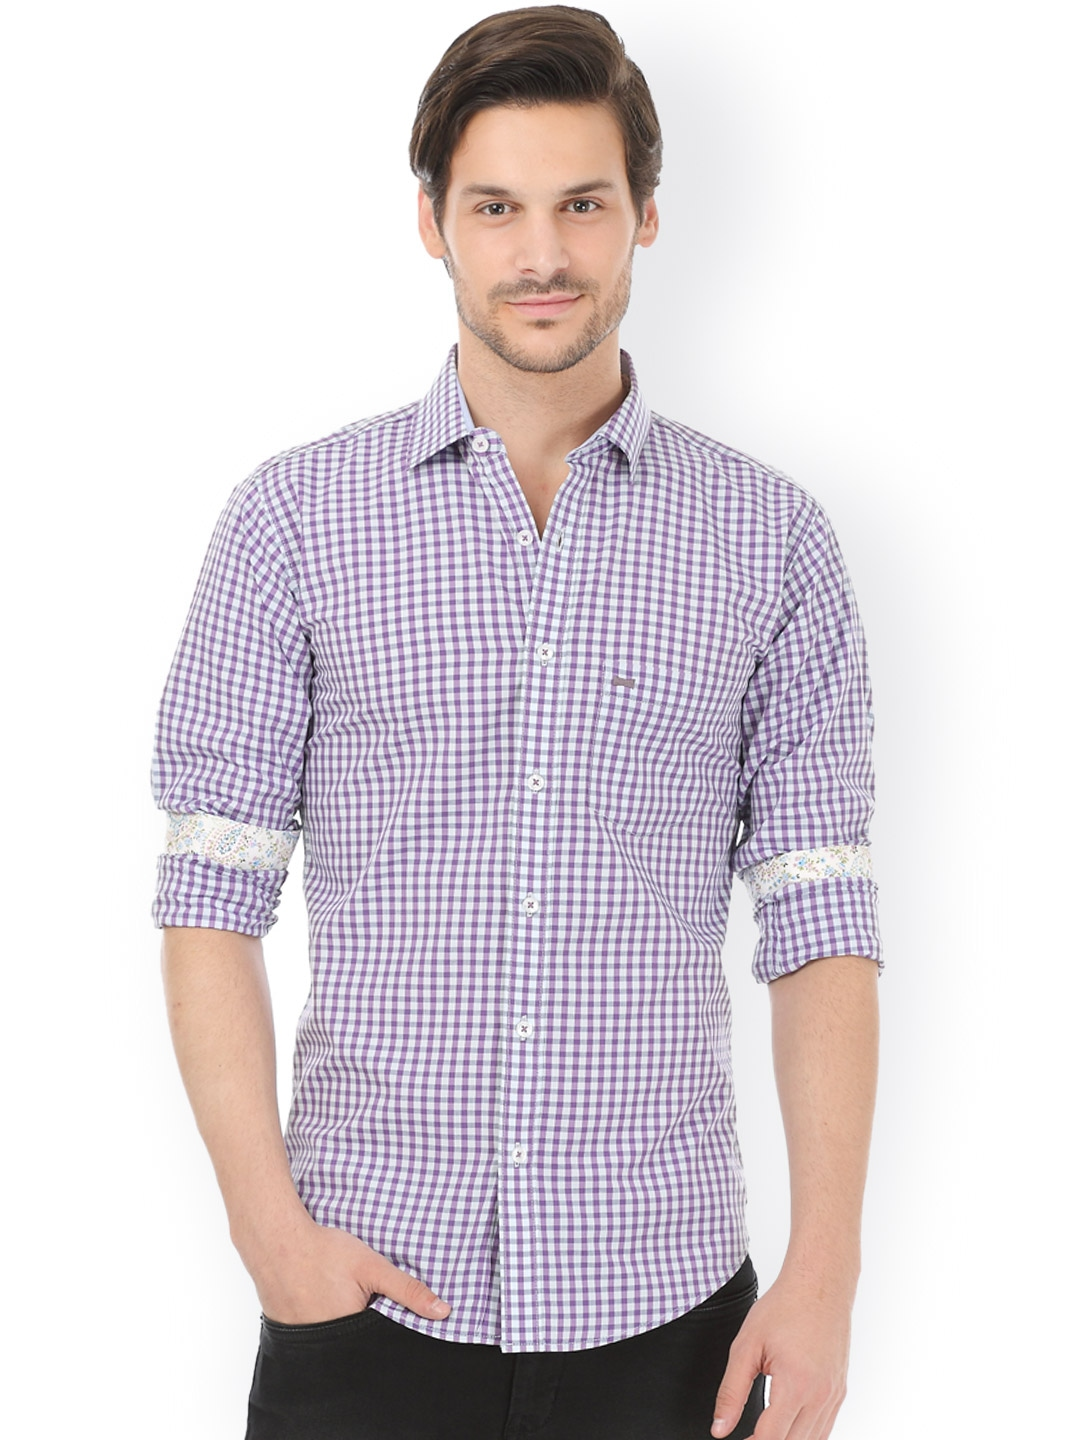 Buy Basics Men Casual Shirts online in India. Huge selection of Men Basics Casual Shirts at trueiuptaf.gq All India FREE Shipping. Cash on Delivery available.